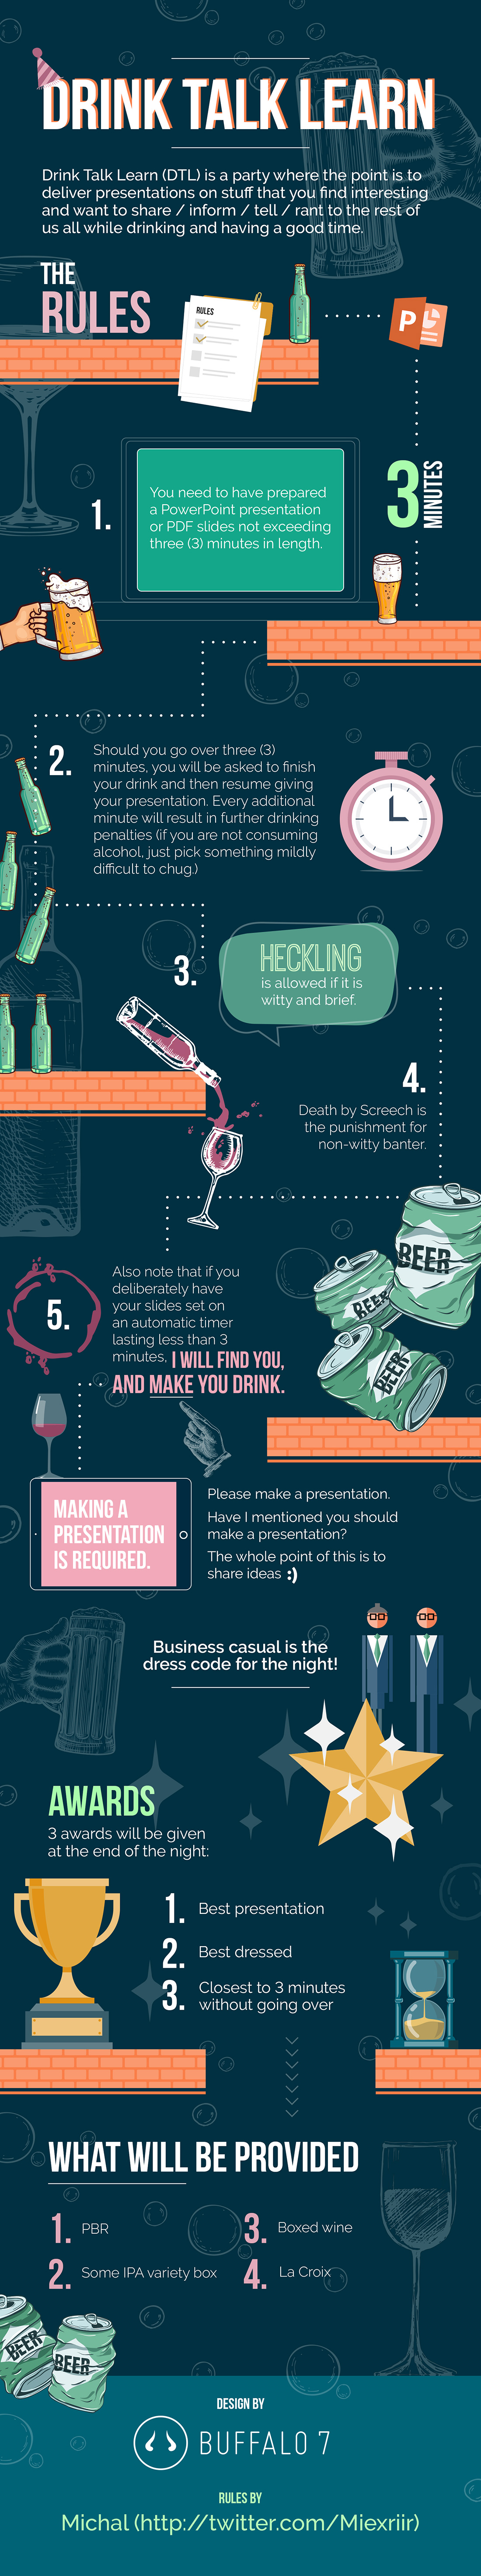 Drink Talk Learn PowerPoint Presentation Infographic